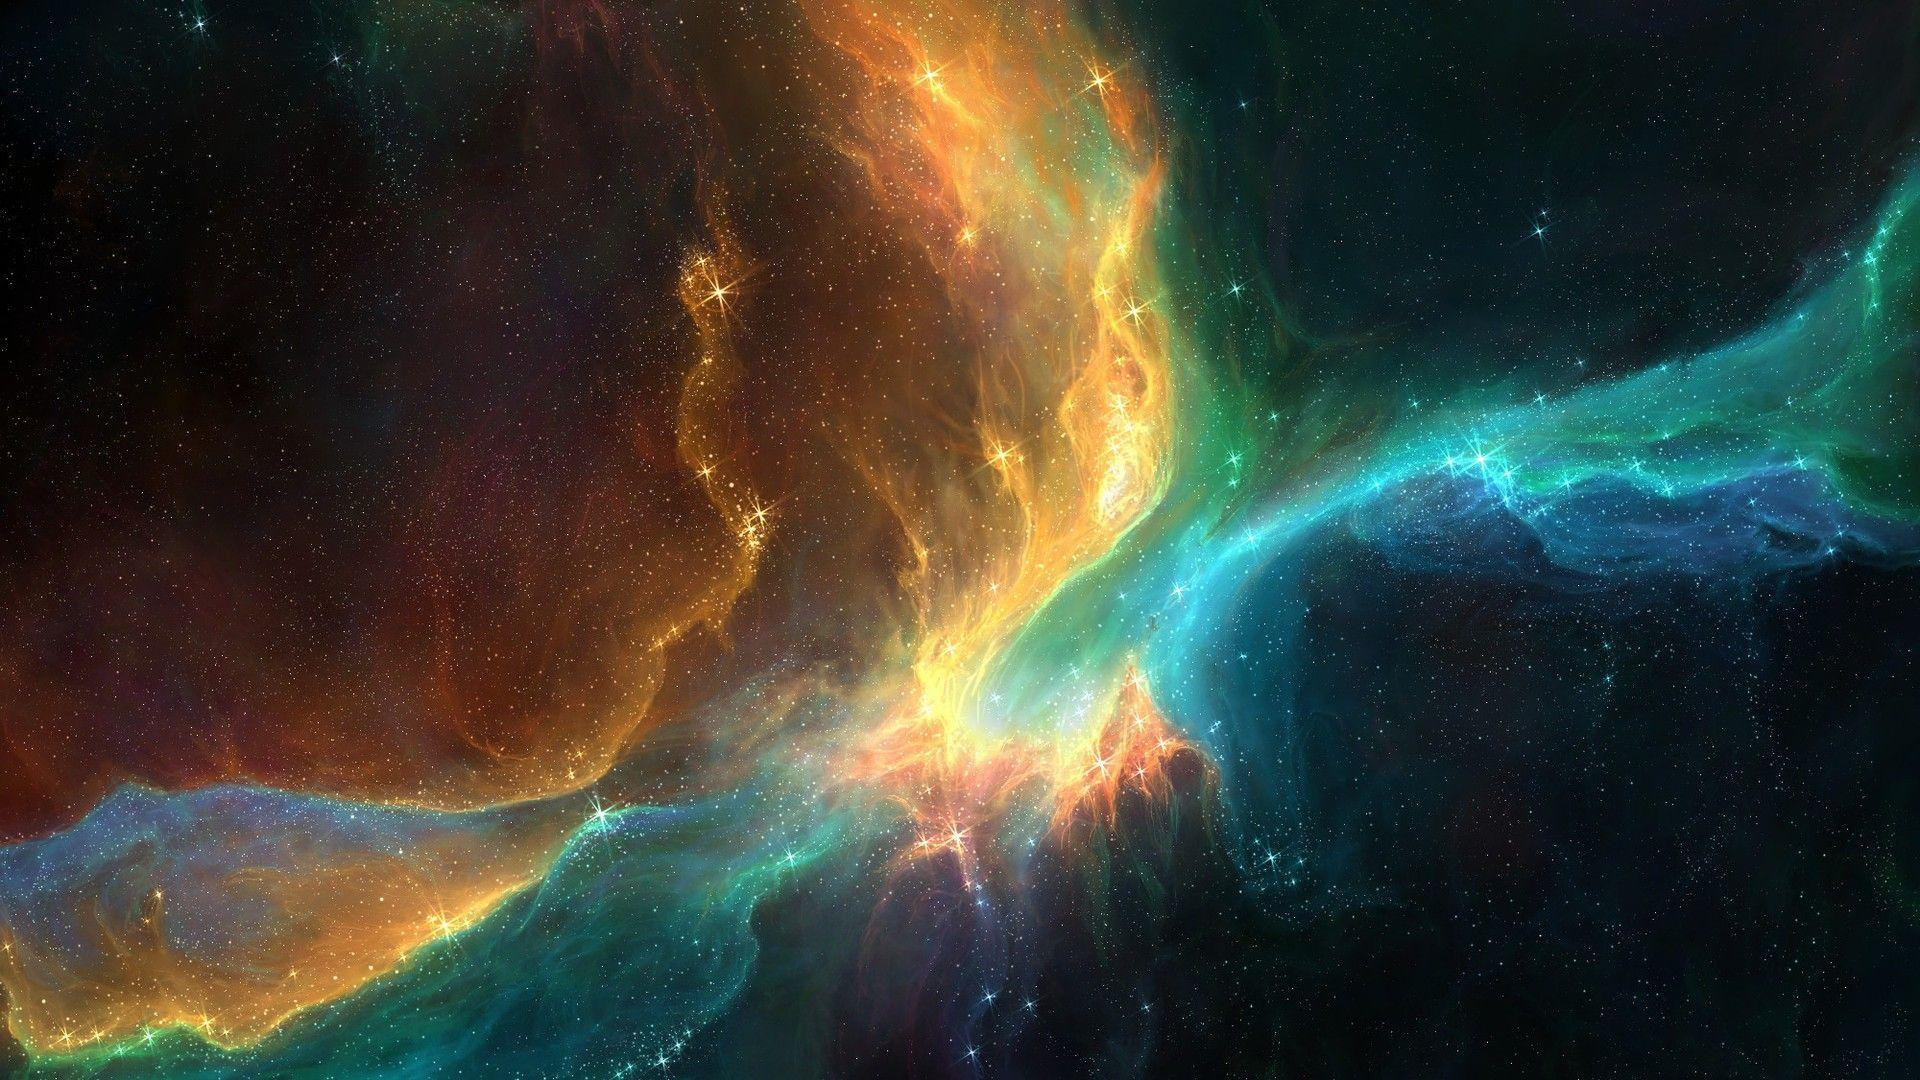 Outer Space Desktop Backgrounds 1920x1080